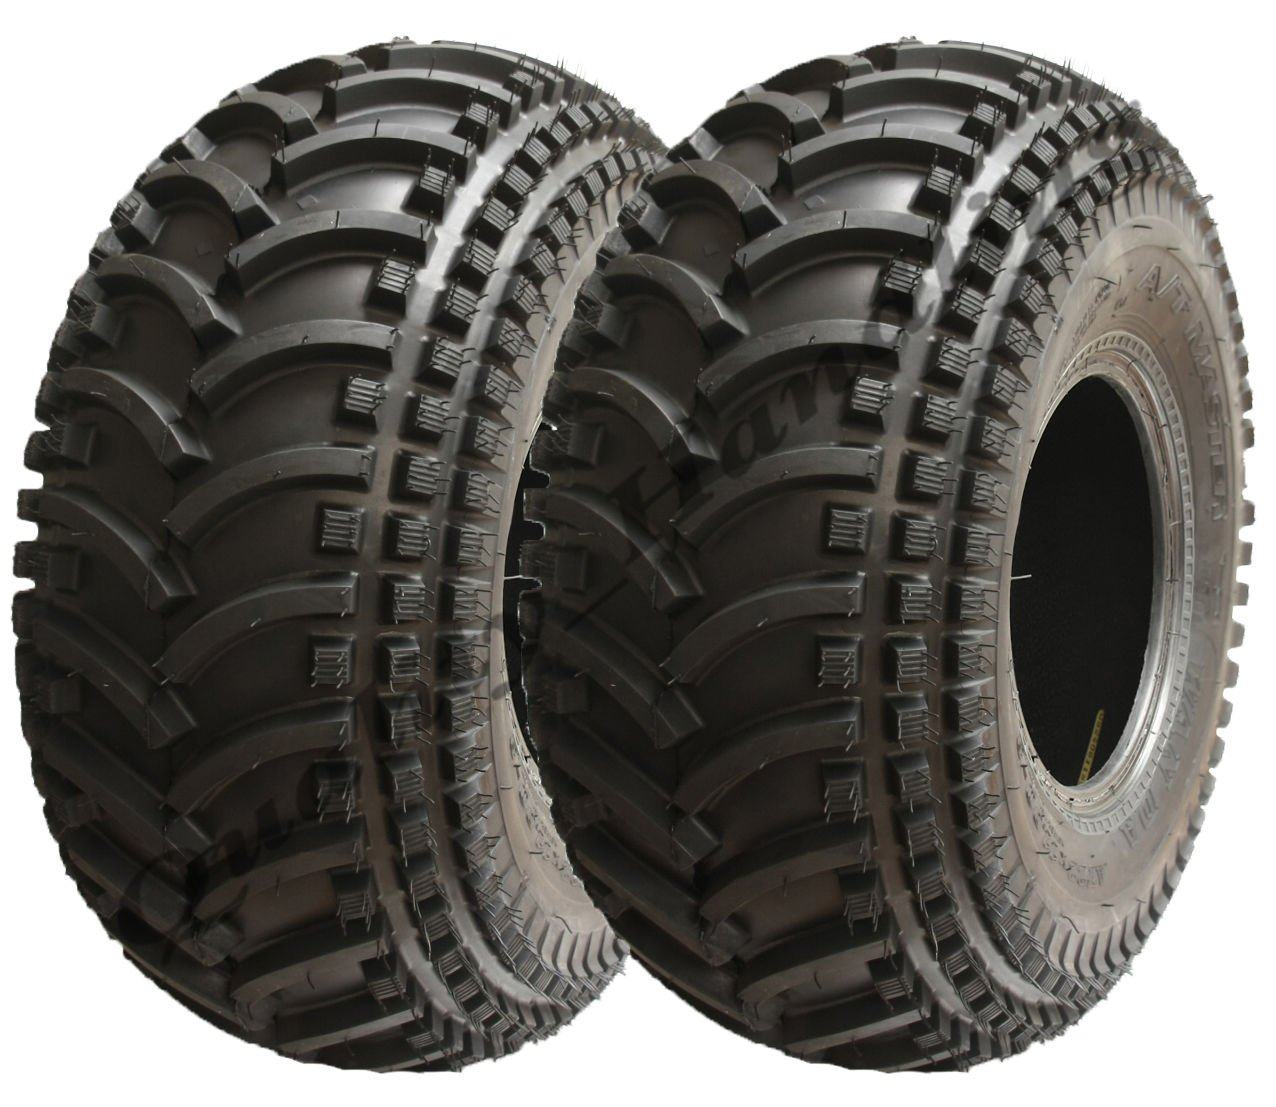 2-22x11.00-8 quad tyres, 22 11 8 ATV tyres Wanda P308 E marked